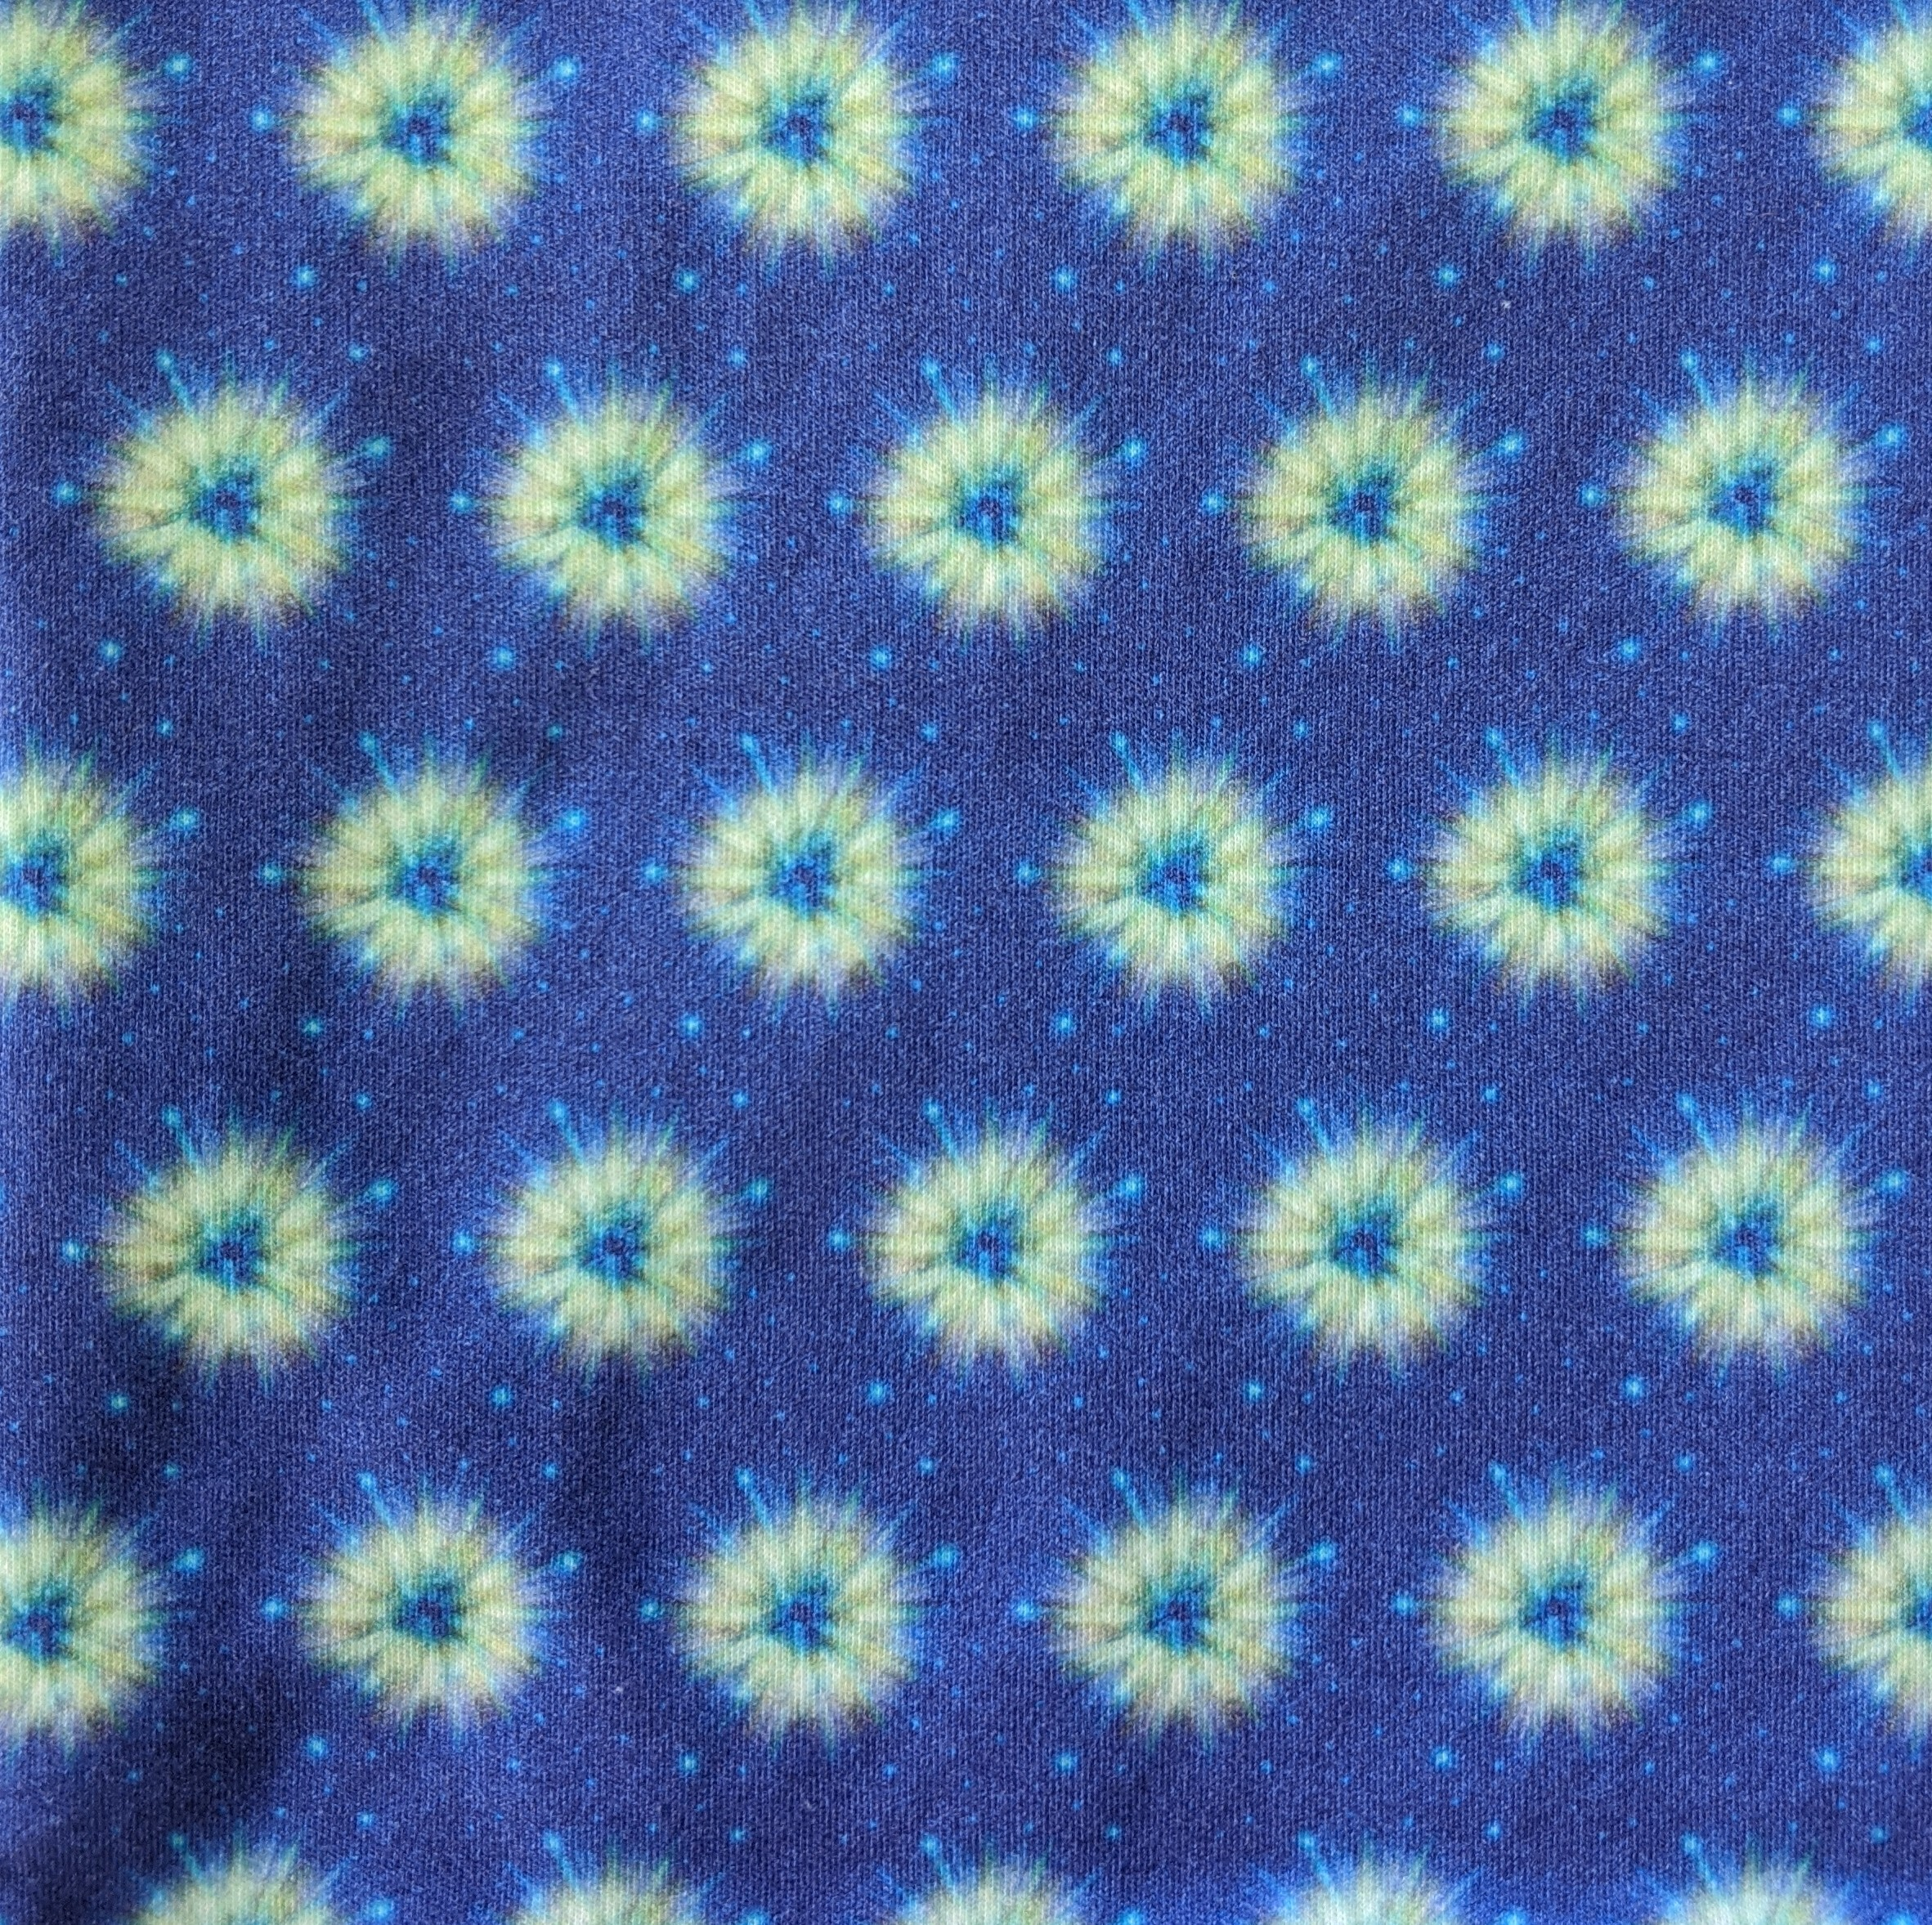 Yellow Space Fuzzies on Indigo Blue